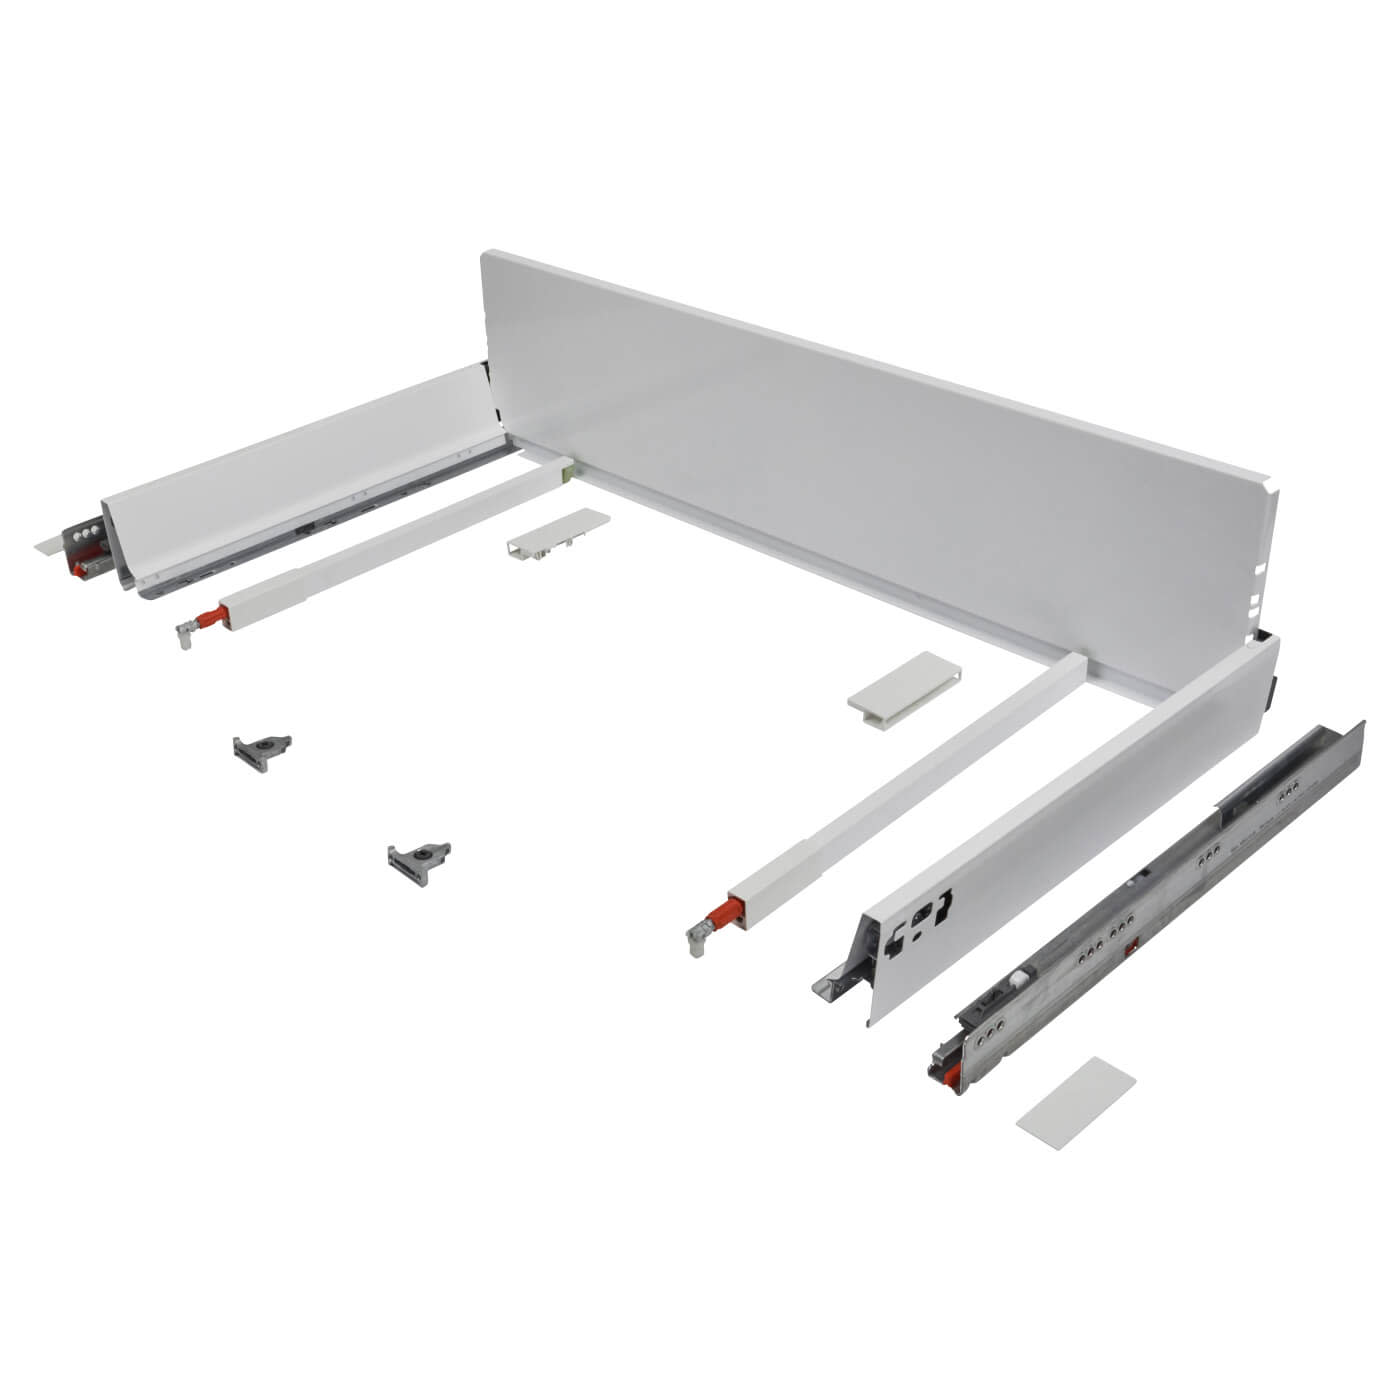 Blum TANDEMBOX ANTARO Pan Drawer - BLUMOTION Soft Close - (H) 203mm x (D) 350mm x (W) 1200mm - Whit)